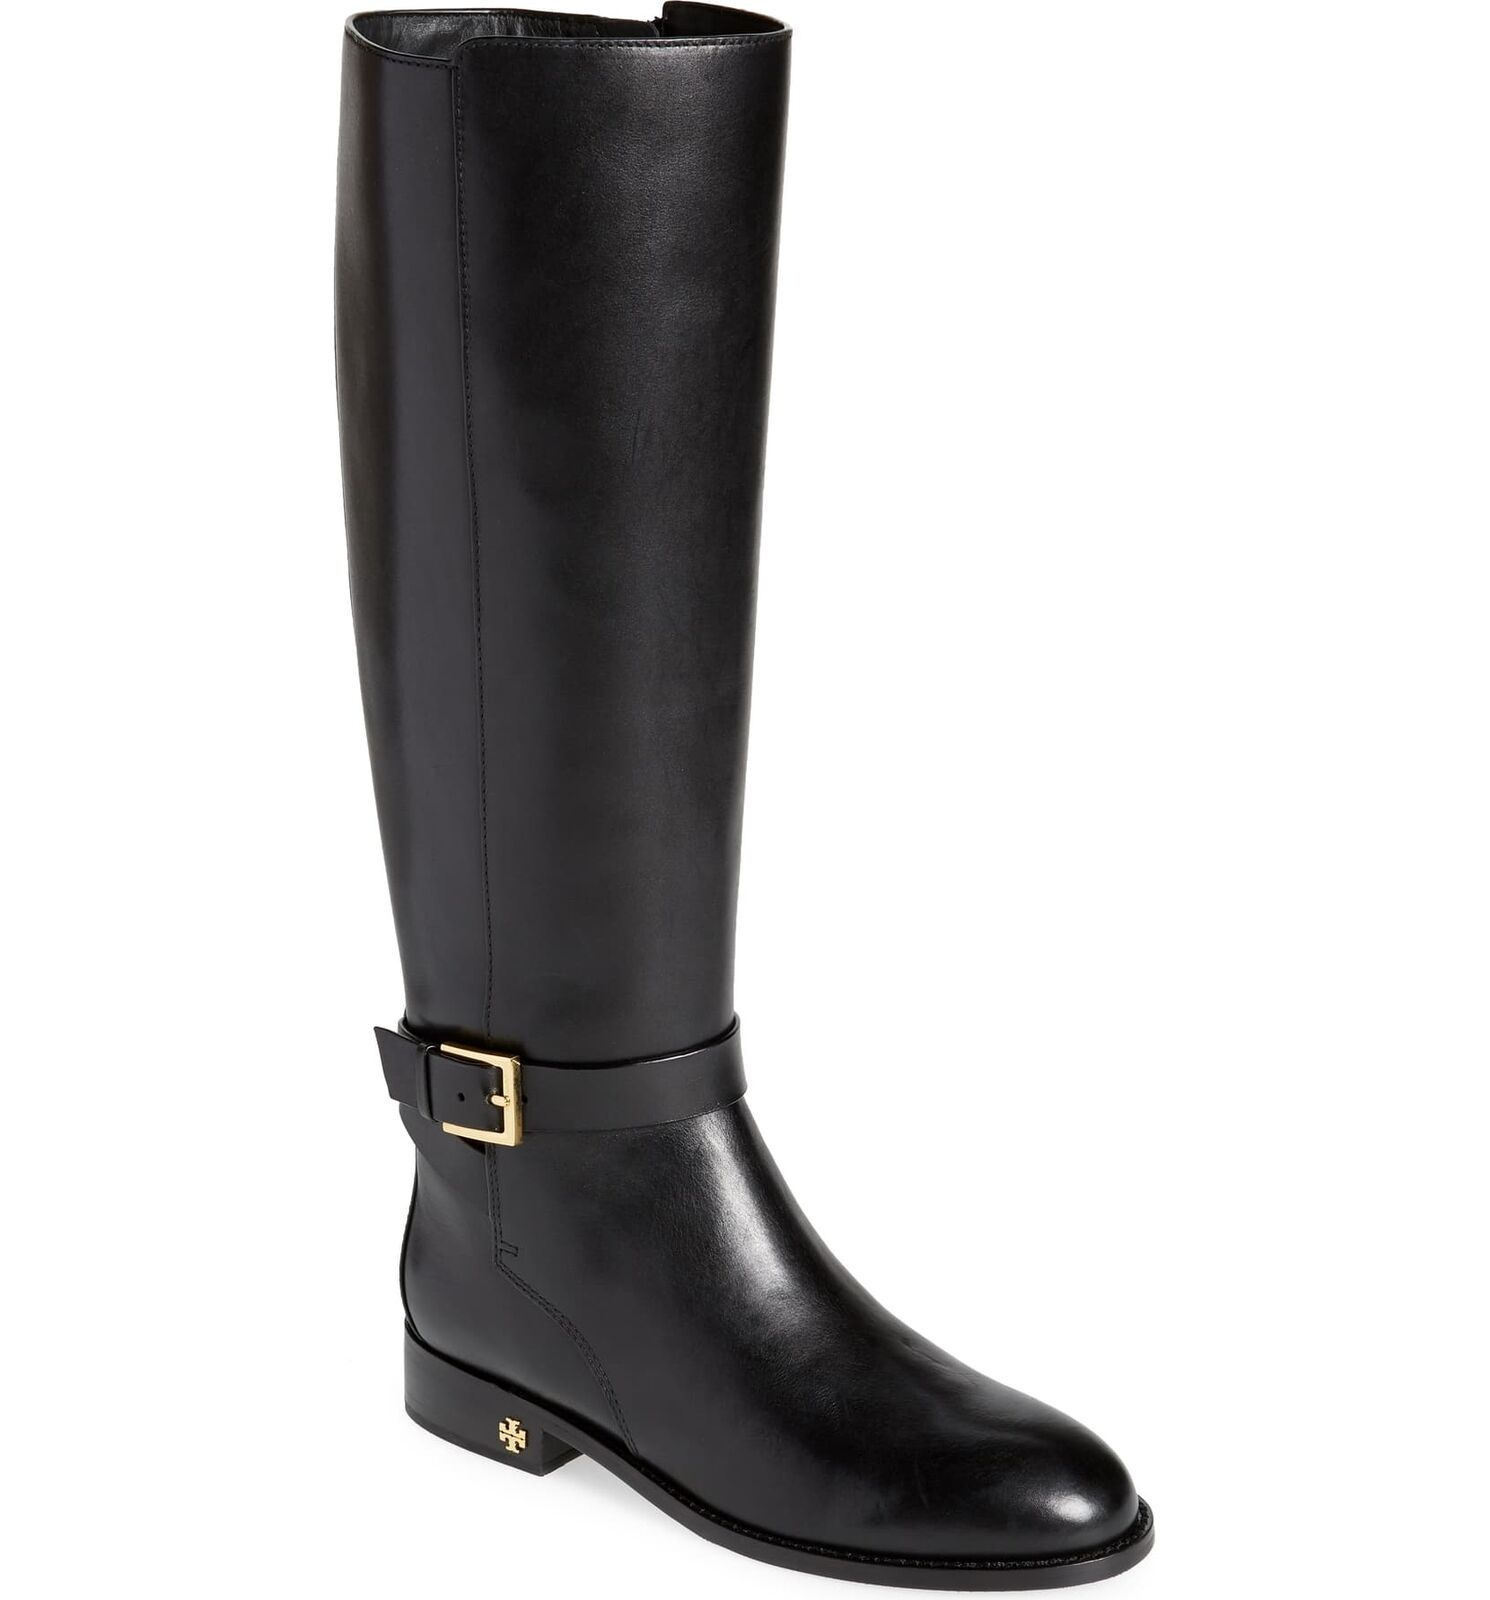 Tory Burch Women's Brooke 25MM Leather Knee High Riding Boot